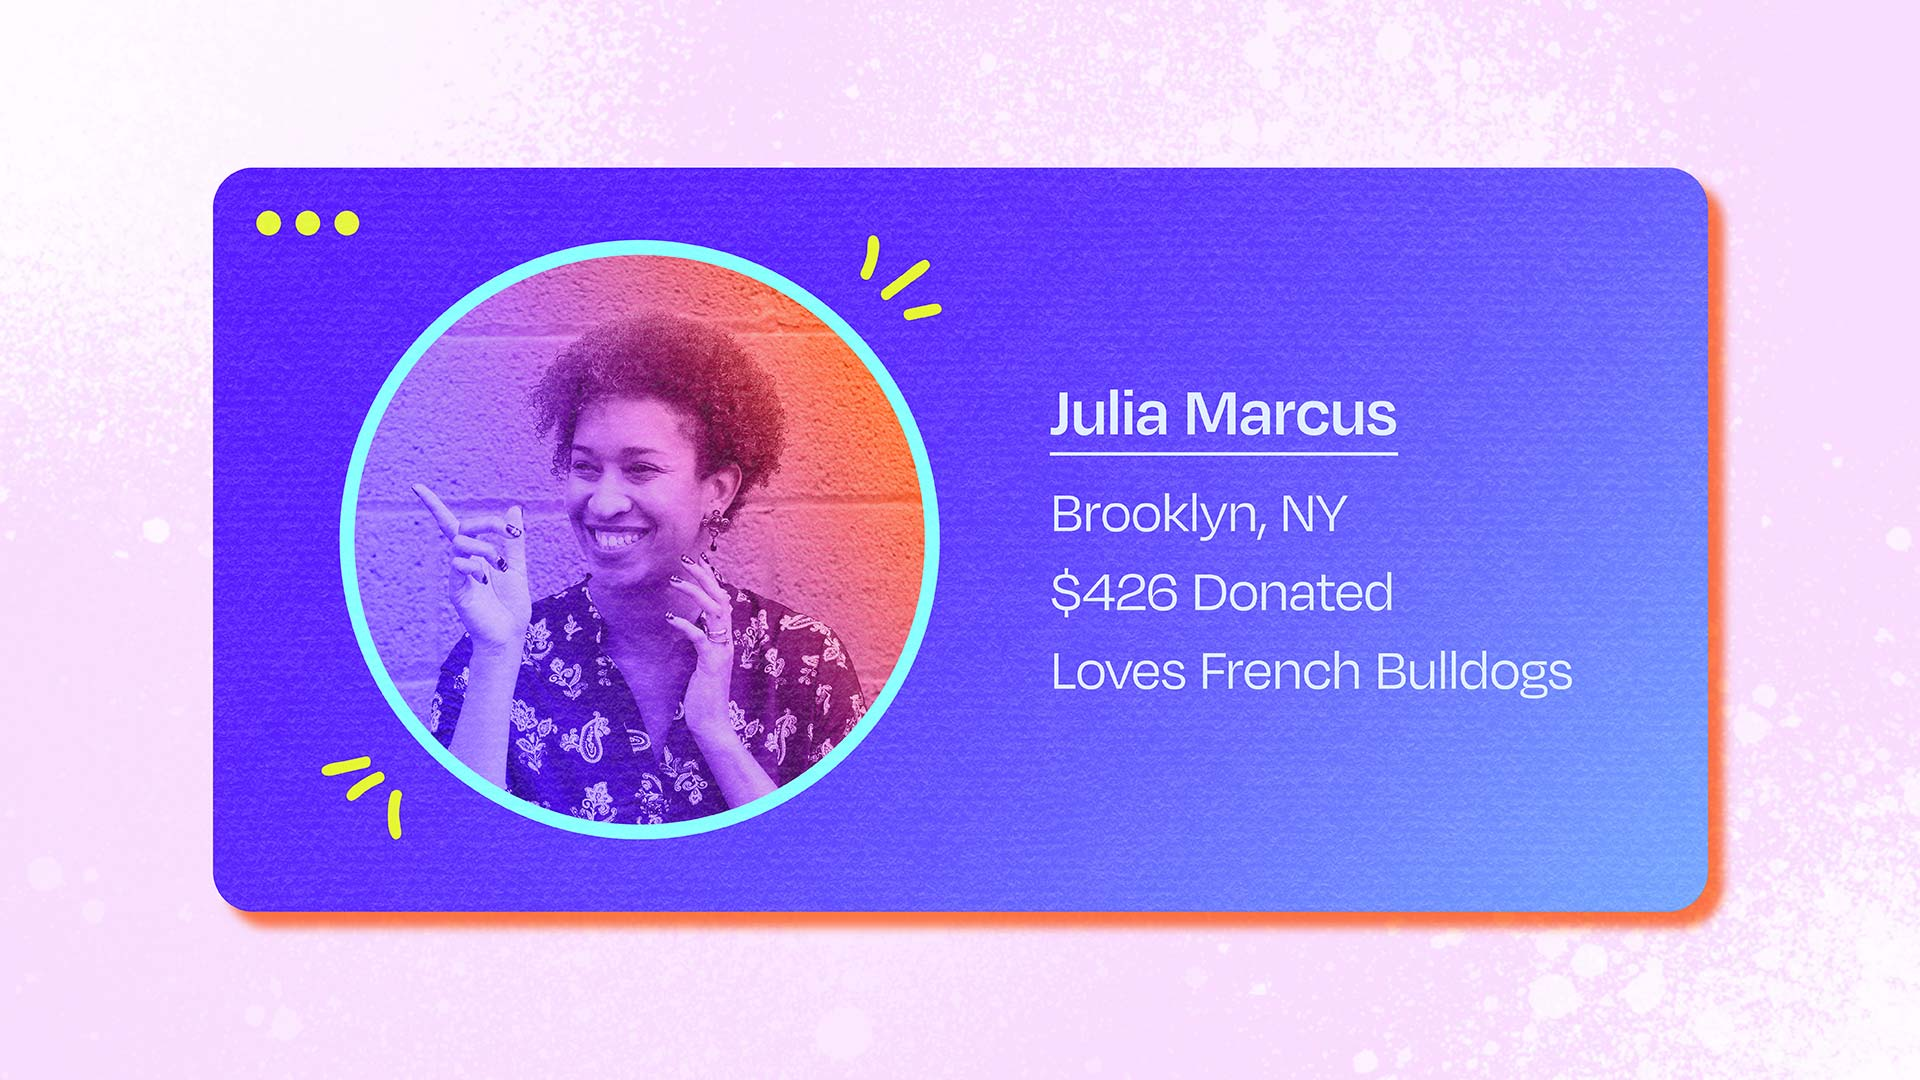 A colorful card displays a donor's information next to her profile picture: Julia Marcus, Brooklyn, NY, $426 donated, Loves French Bulldogs.